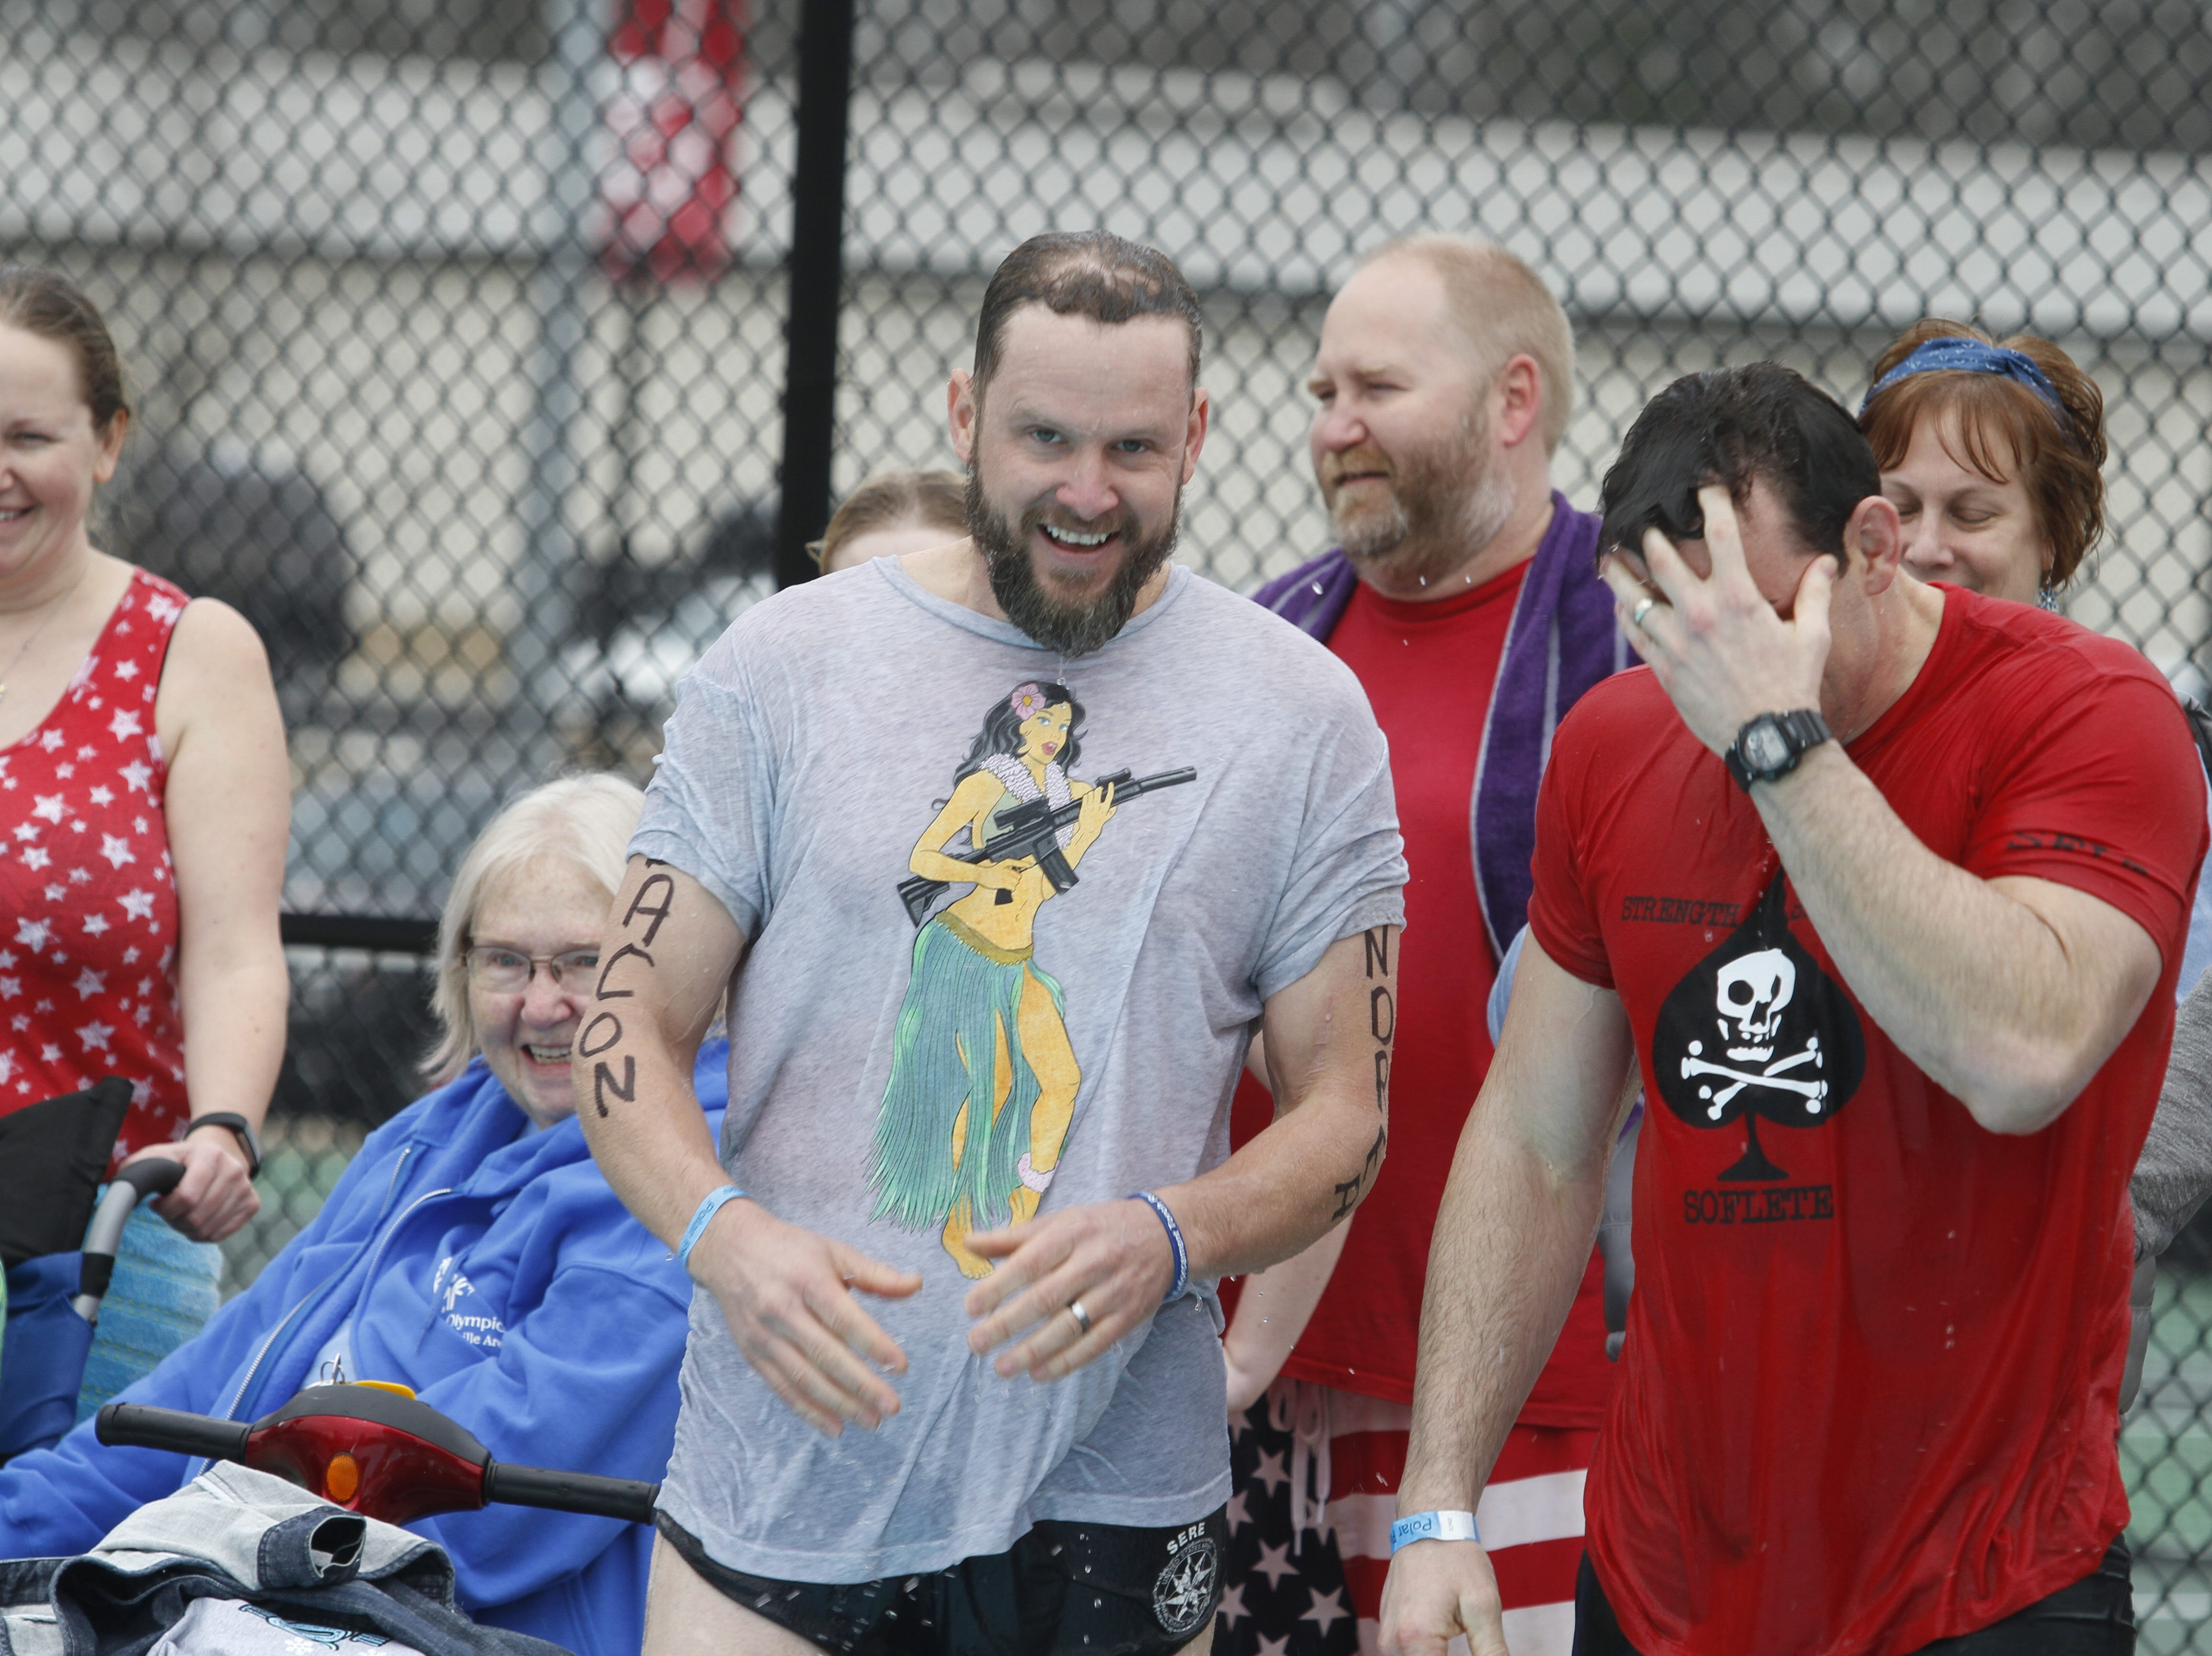 Dozens of participants came out for the Special Olympics Polar Plunge at APSU on Saturday, Feb. 1, 2019. More than $10,000 was raised at this year's event.